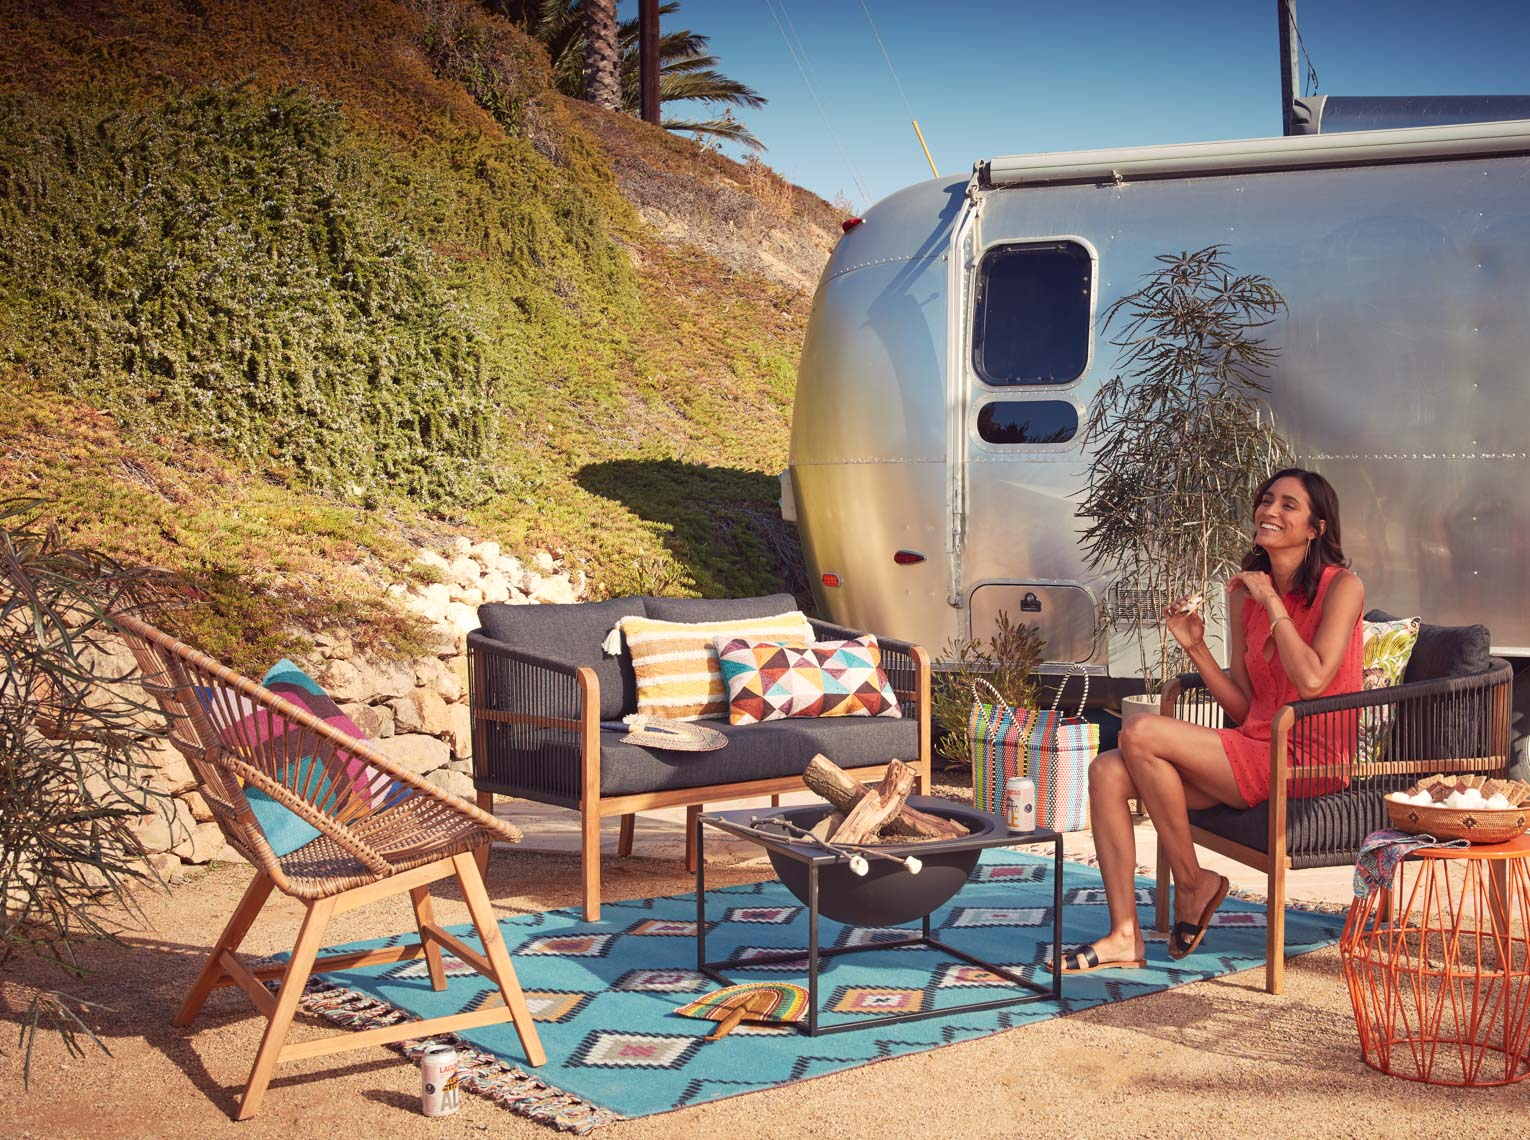 Woman laughing in orange drees seated at outdoor seating with fire bowl and Airstream trailer in the sun